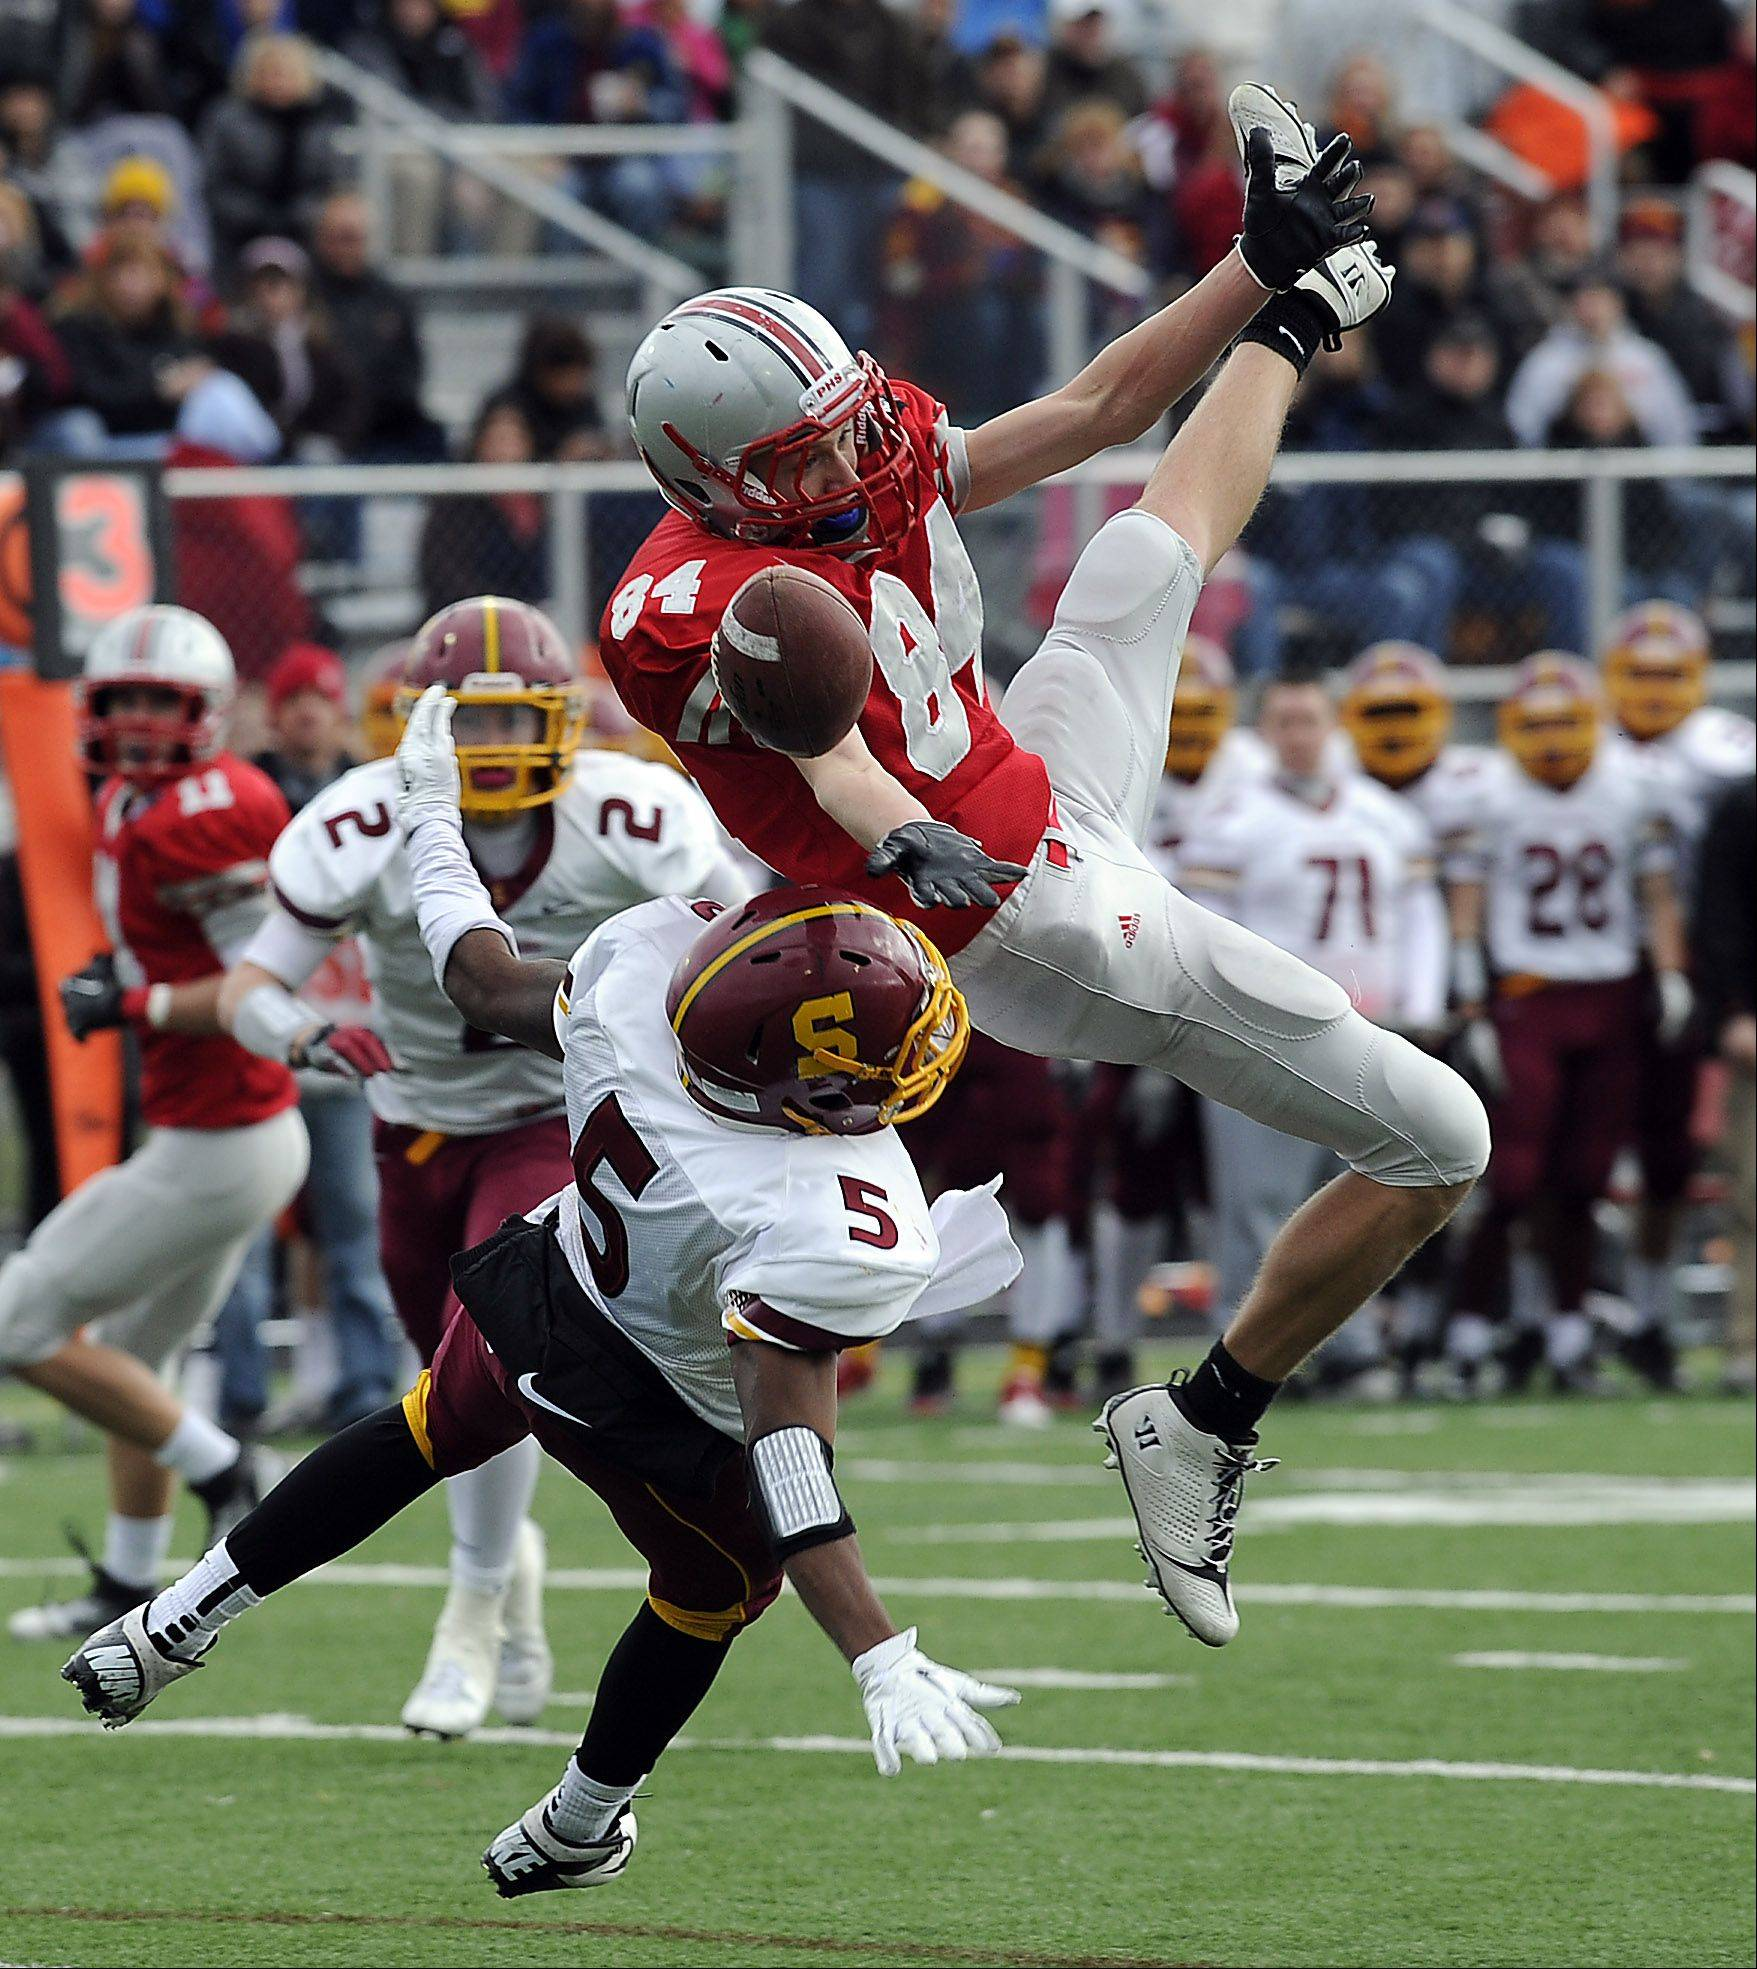 Palatine's Eric Theis has a first quarter pass play broken up by Schaumburg's Rahsaan Green Jr defensive coverage as Palatine advances to the third round of the Class 8A playoffs with their victory over Schaumburg at Palatine High School on Saturday.